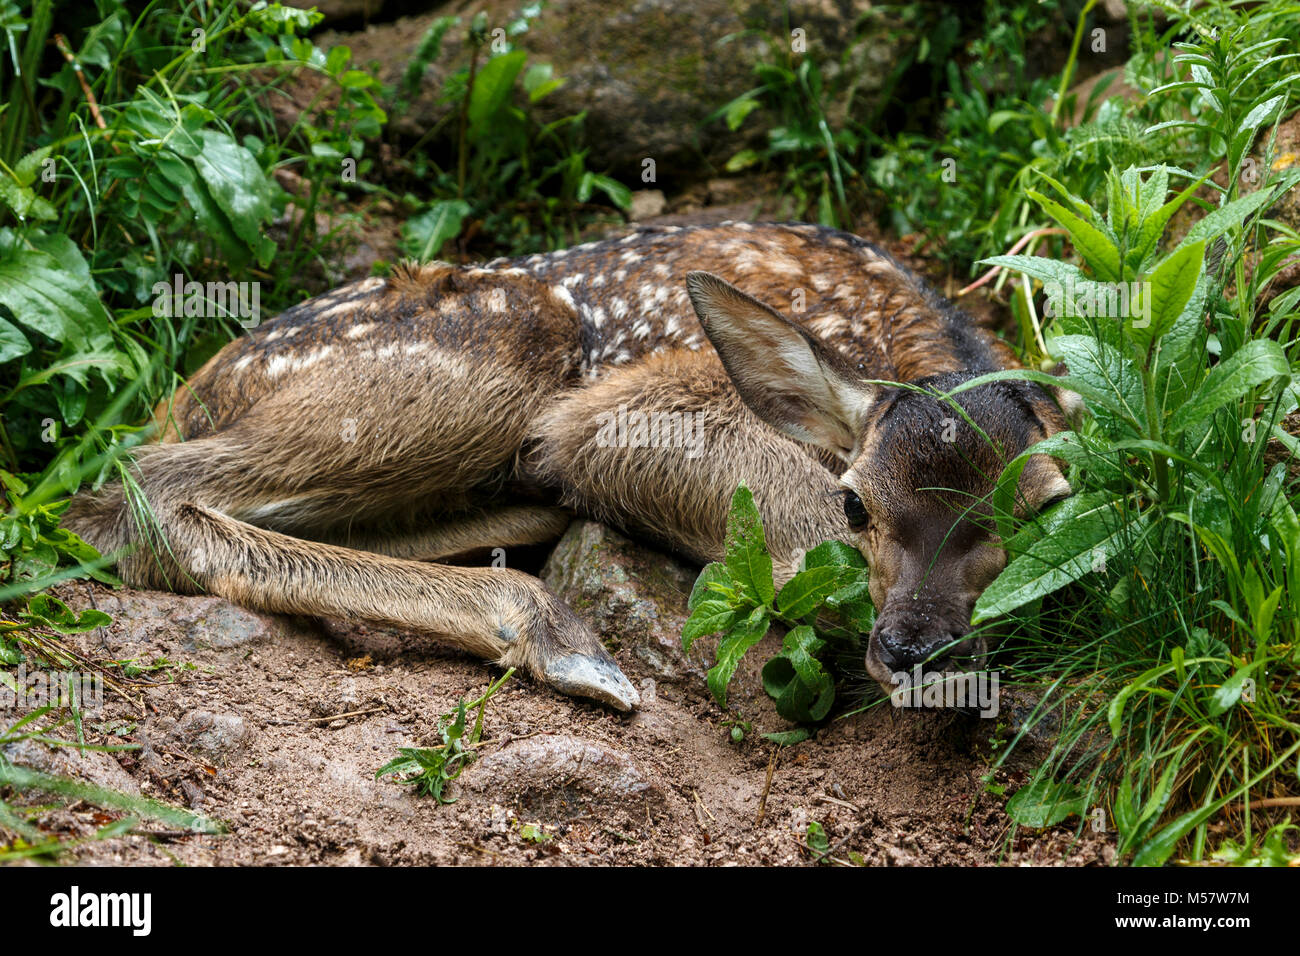 Spring closeup of a whitetail deer fawn bedded down in a woodland habitat, - Stock Image